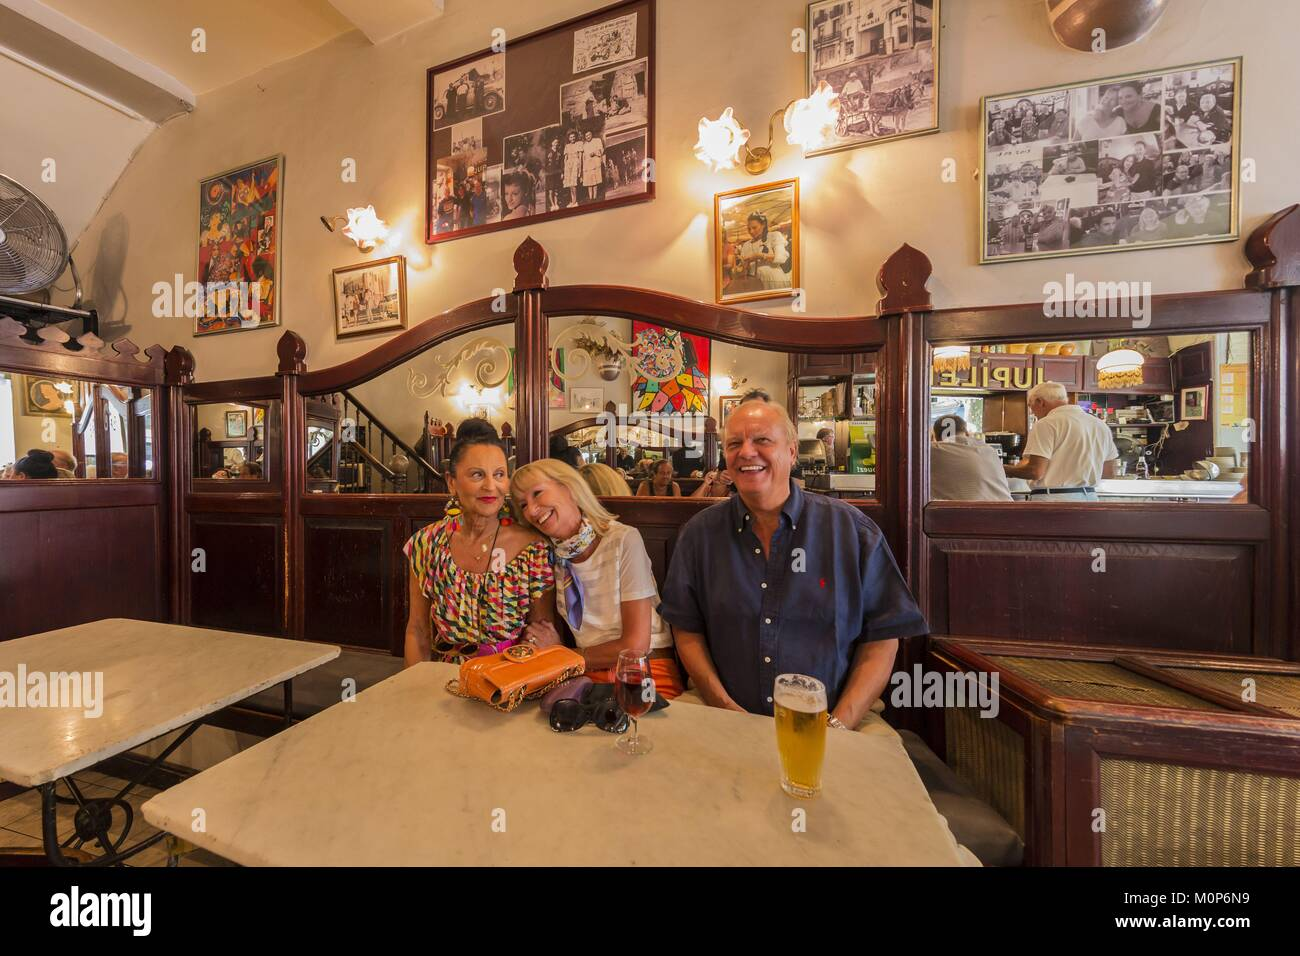 France,Gard,Uzes,the Cafe de l'Hotel boulevard des Allies - Stock Image